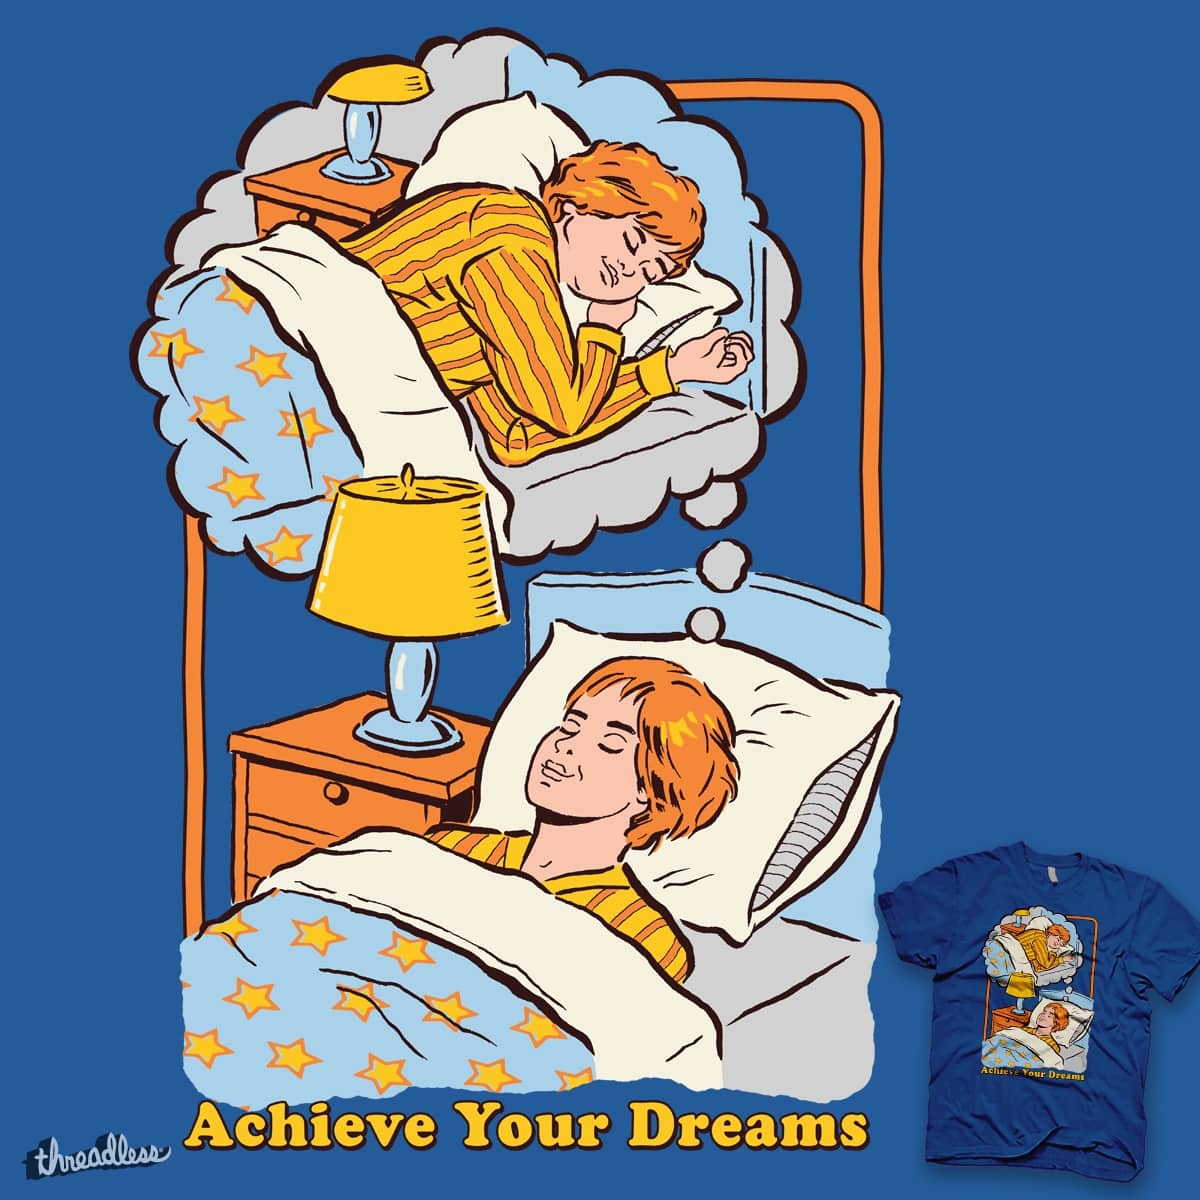 Achieve Your Dreams by blue sparrow on Threadless